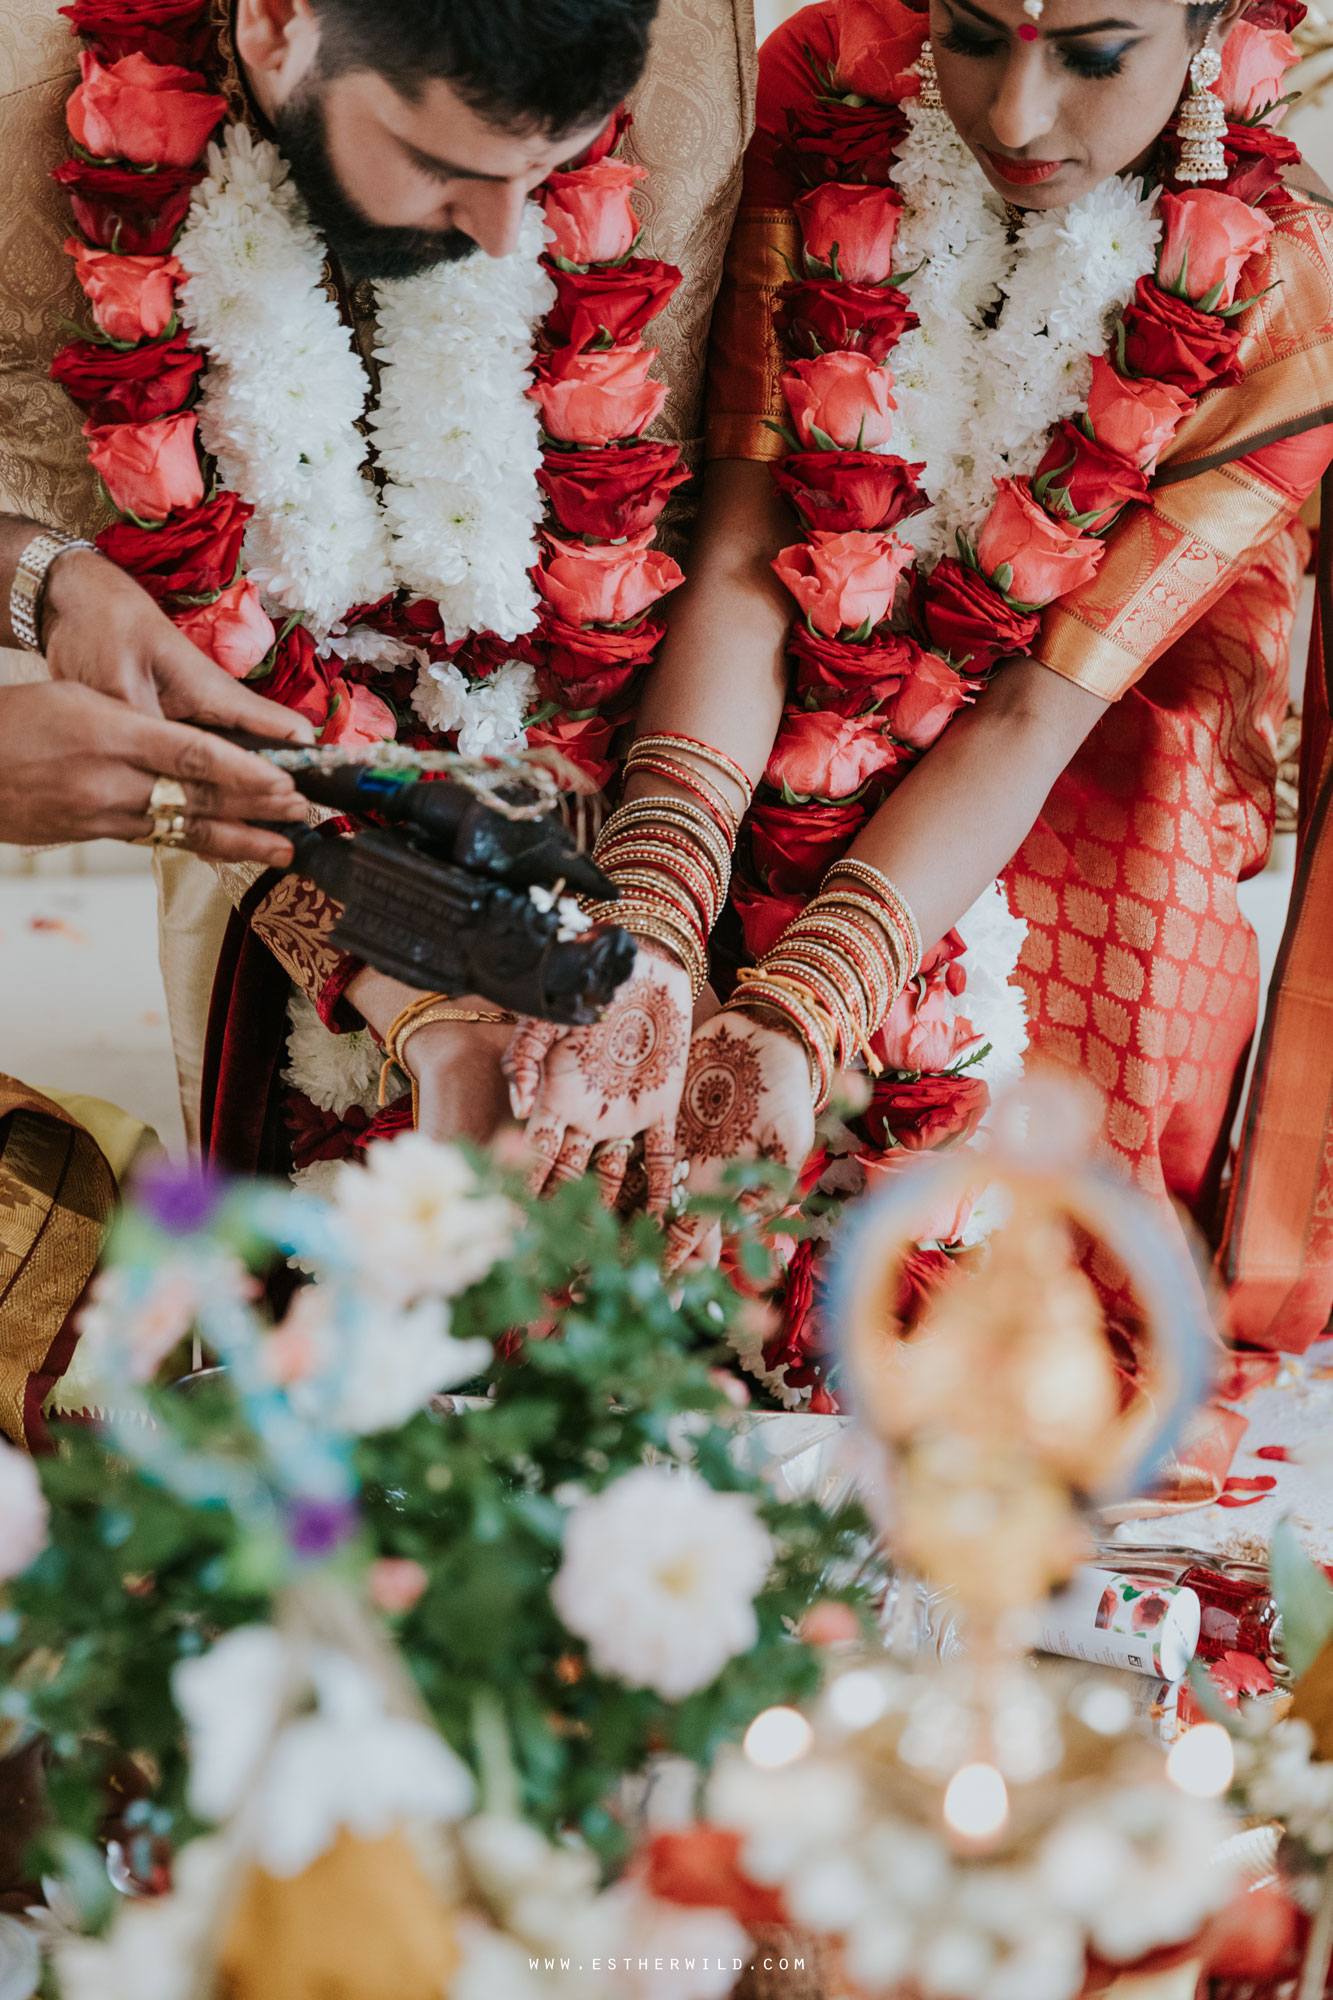 Northbrook_Park_Farnham_Surrey_London_Wedding_Hindu_Fusion_Esther_Wild_Photographer_IMG_4879.jpg